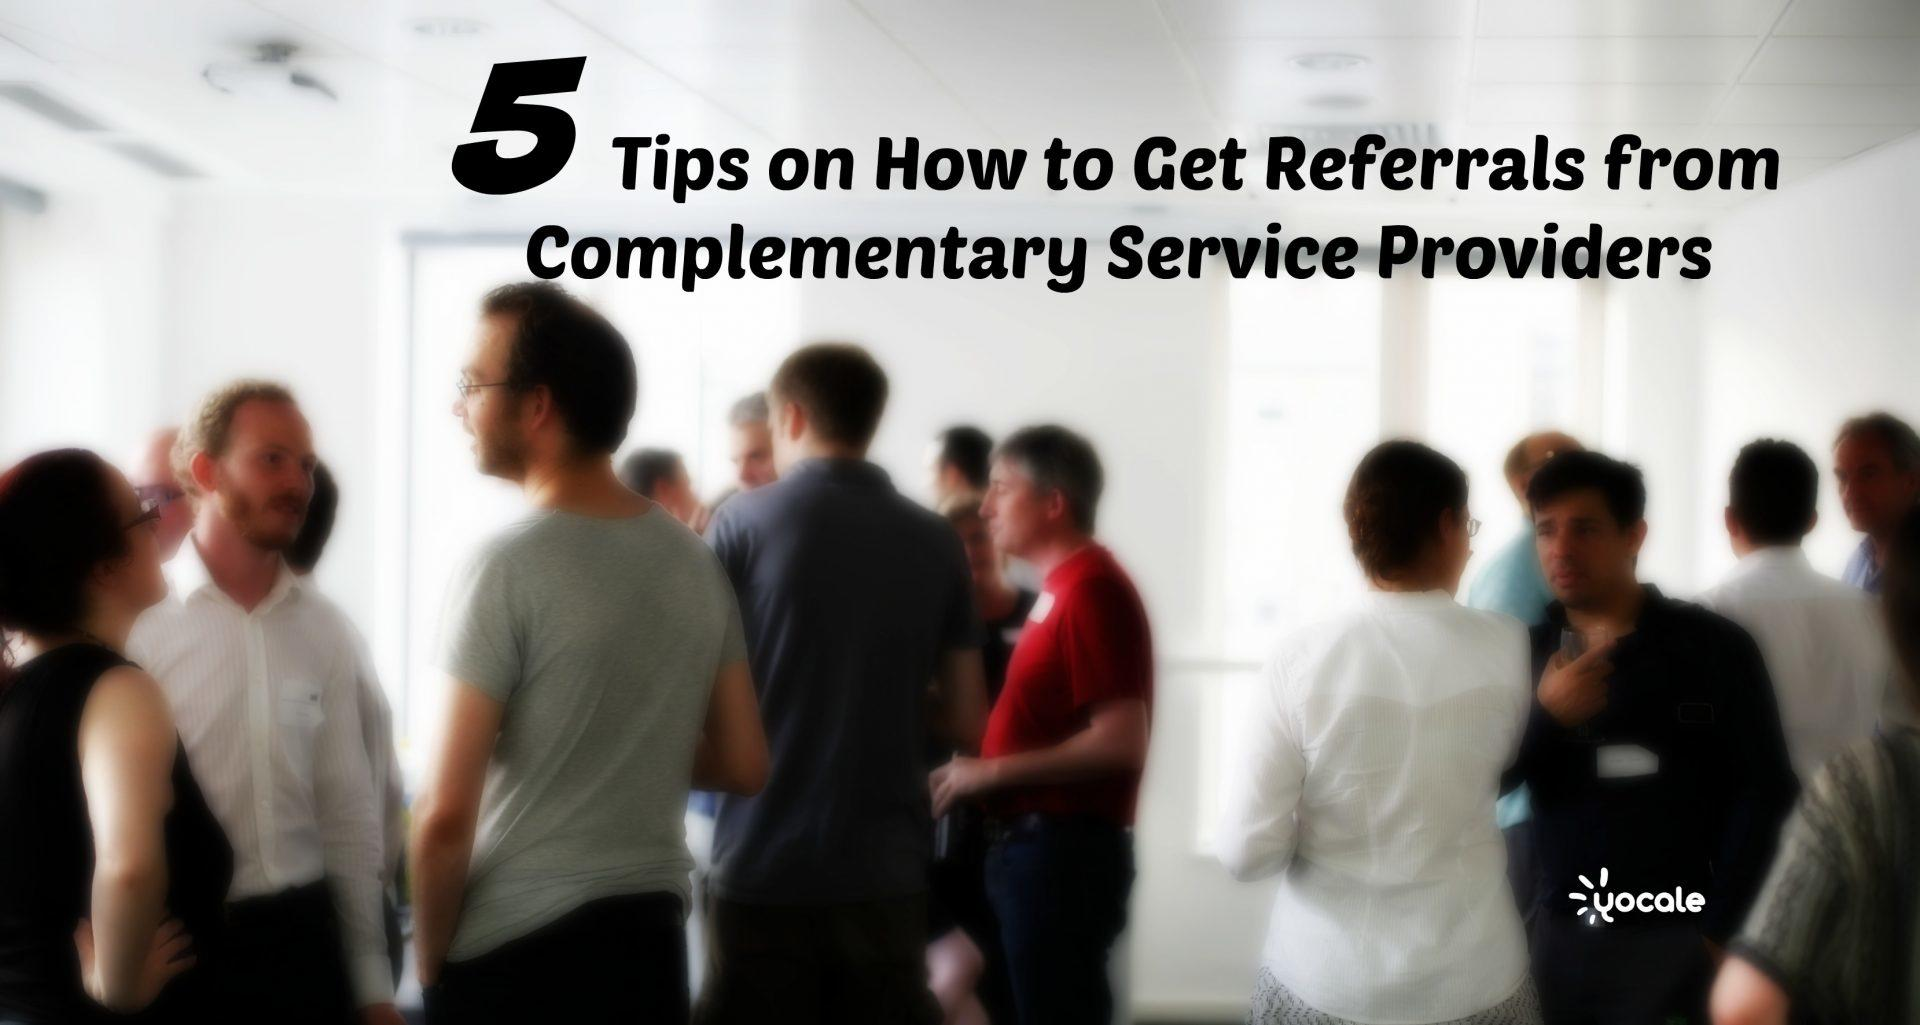 5 Tips on How to Get Referrals from Complementary Service Providers